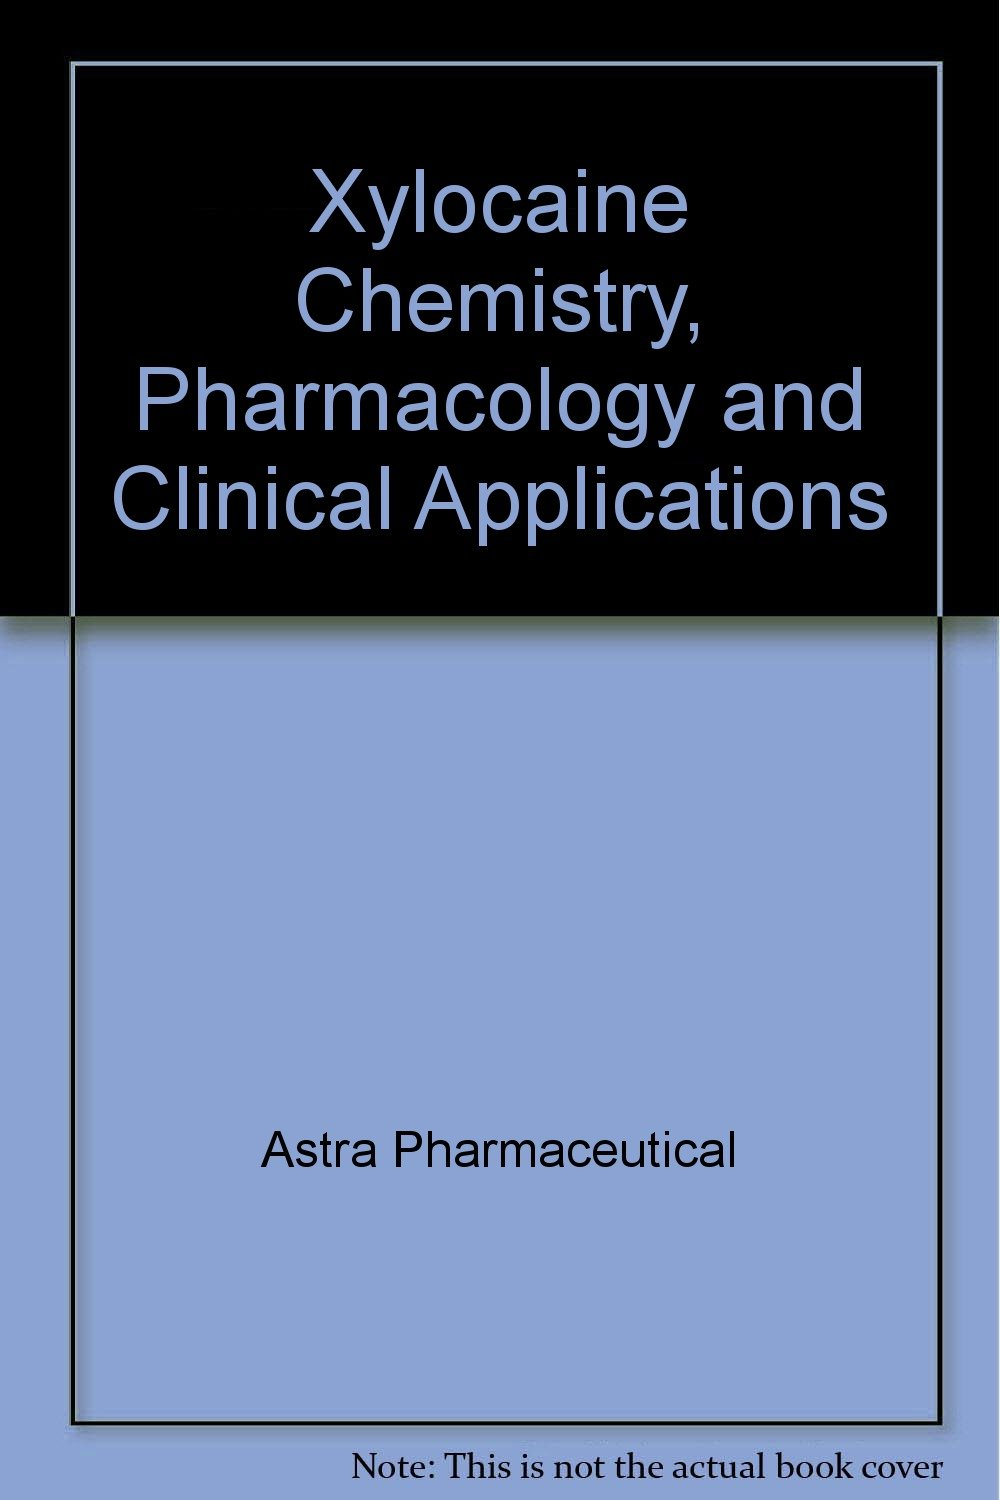 Xylocaine Chemistry, Pharmacology and Clinical Applications: Astra  Pharmaceutical, b/w Illustrations: Amazon.com: Books